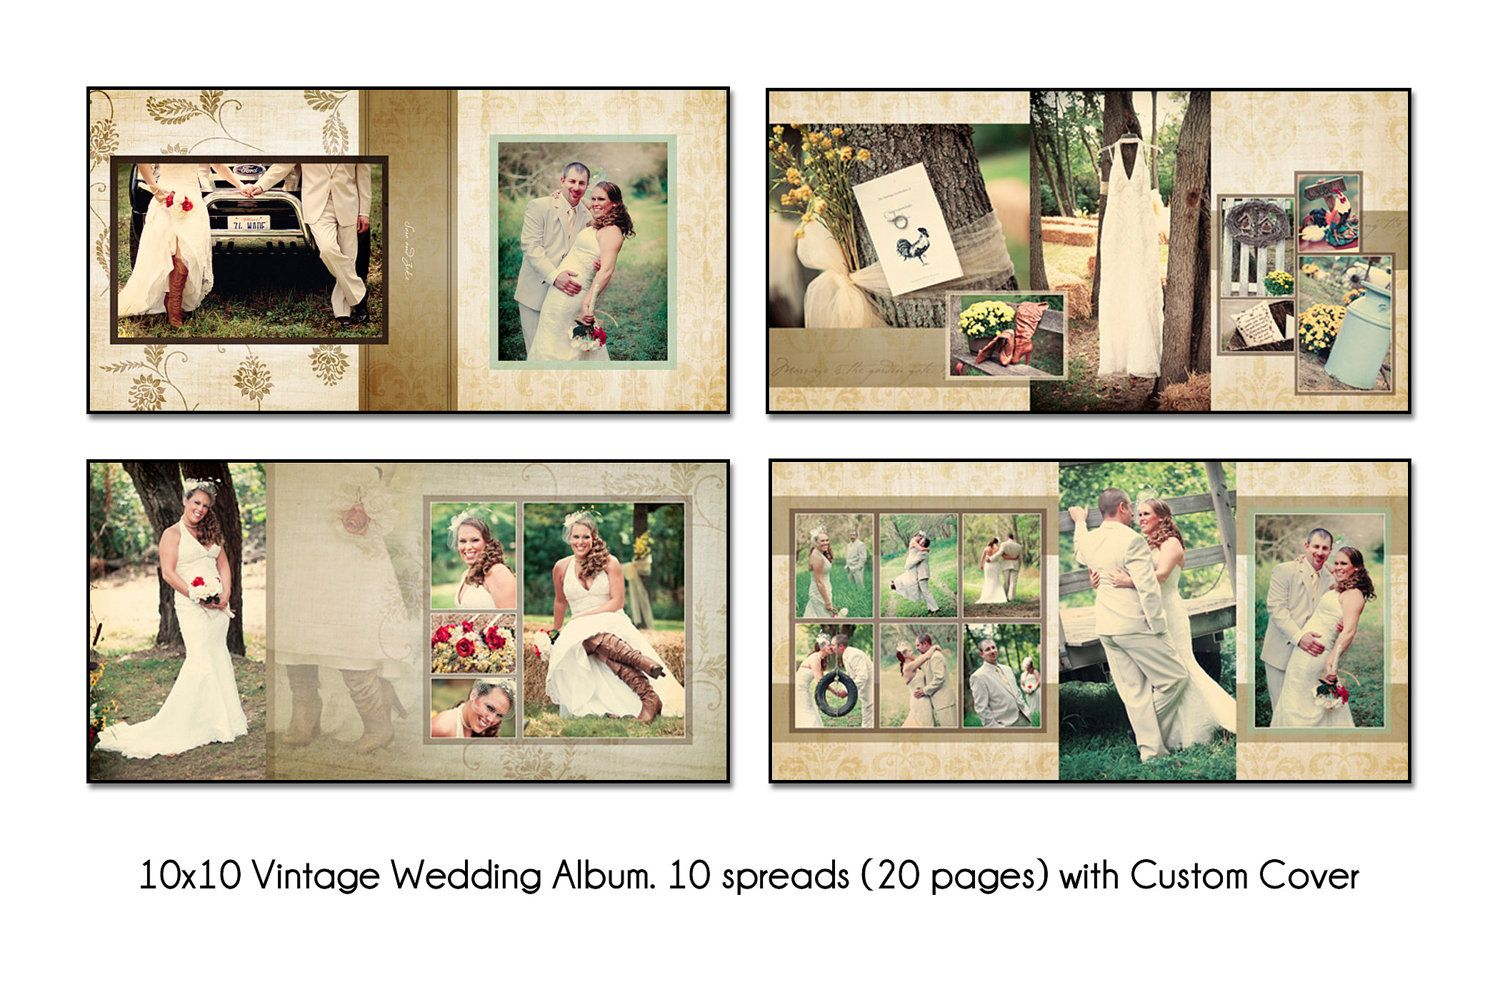 Psd wedding album template vintage 10x10 10spread20 for Wedding photo album templates in photoshop